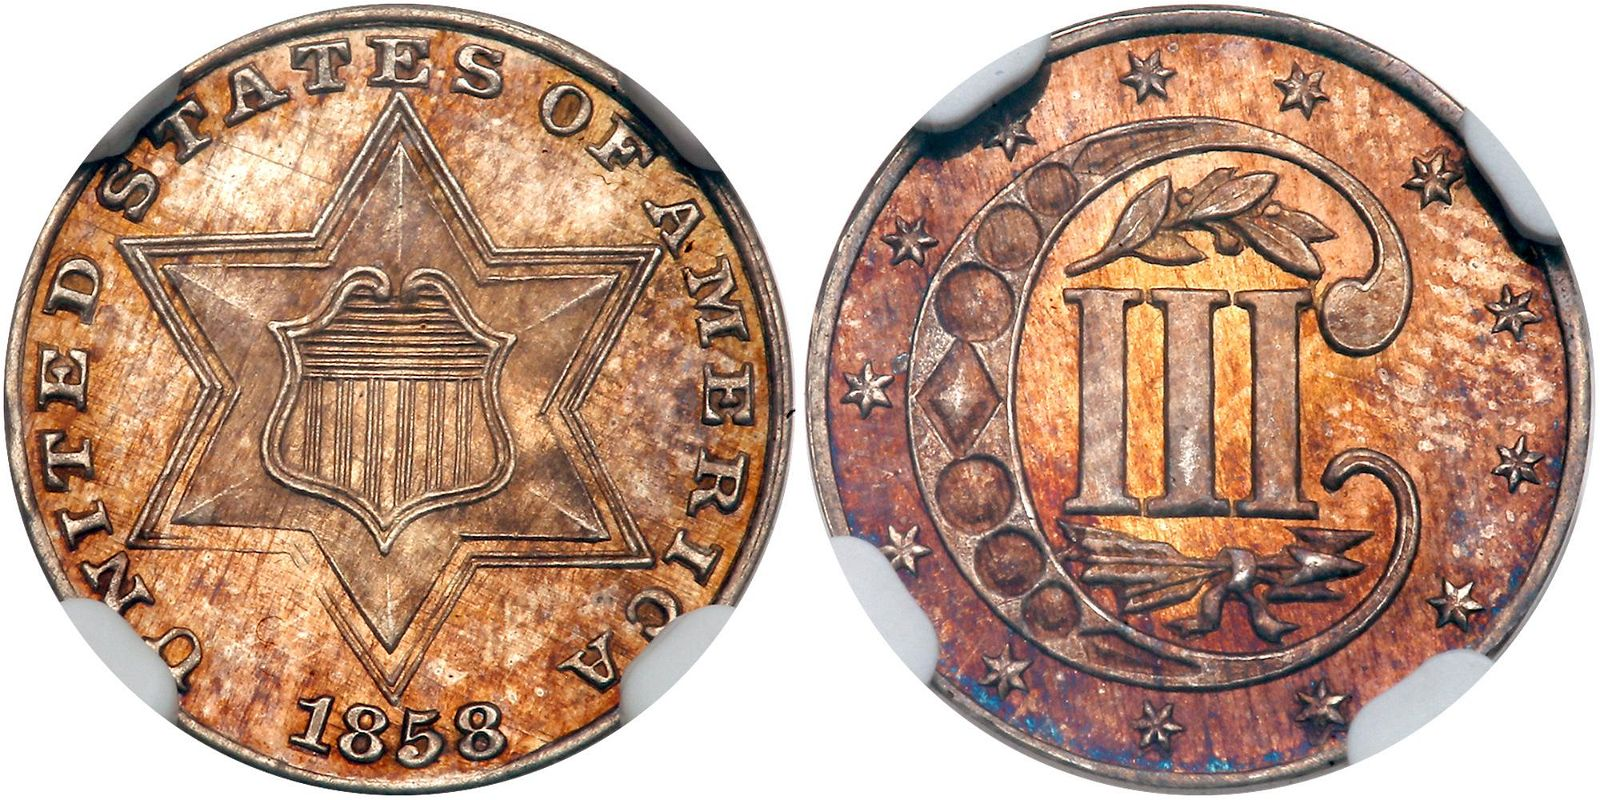 1858 Silver Three Cents